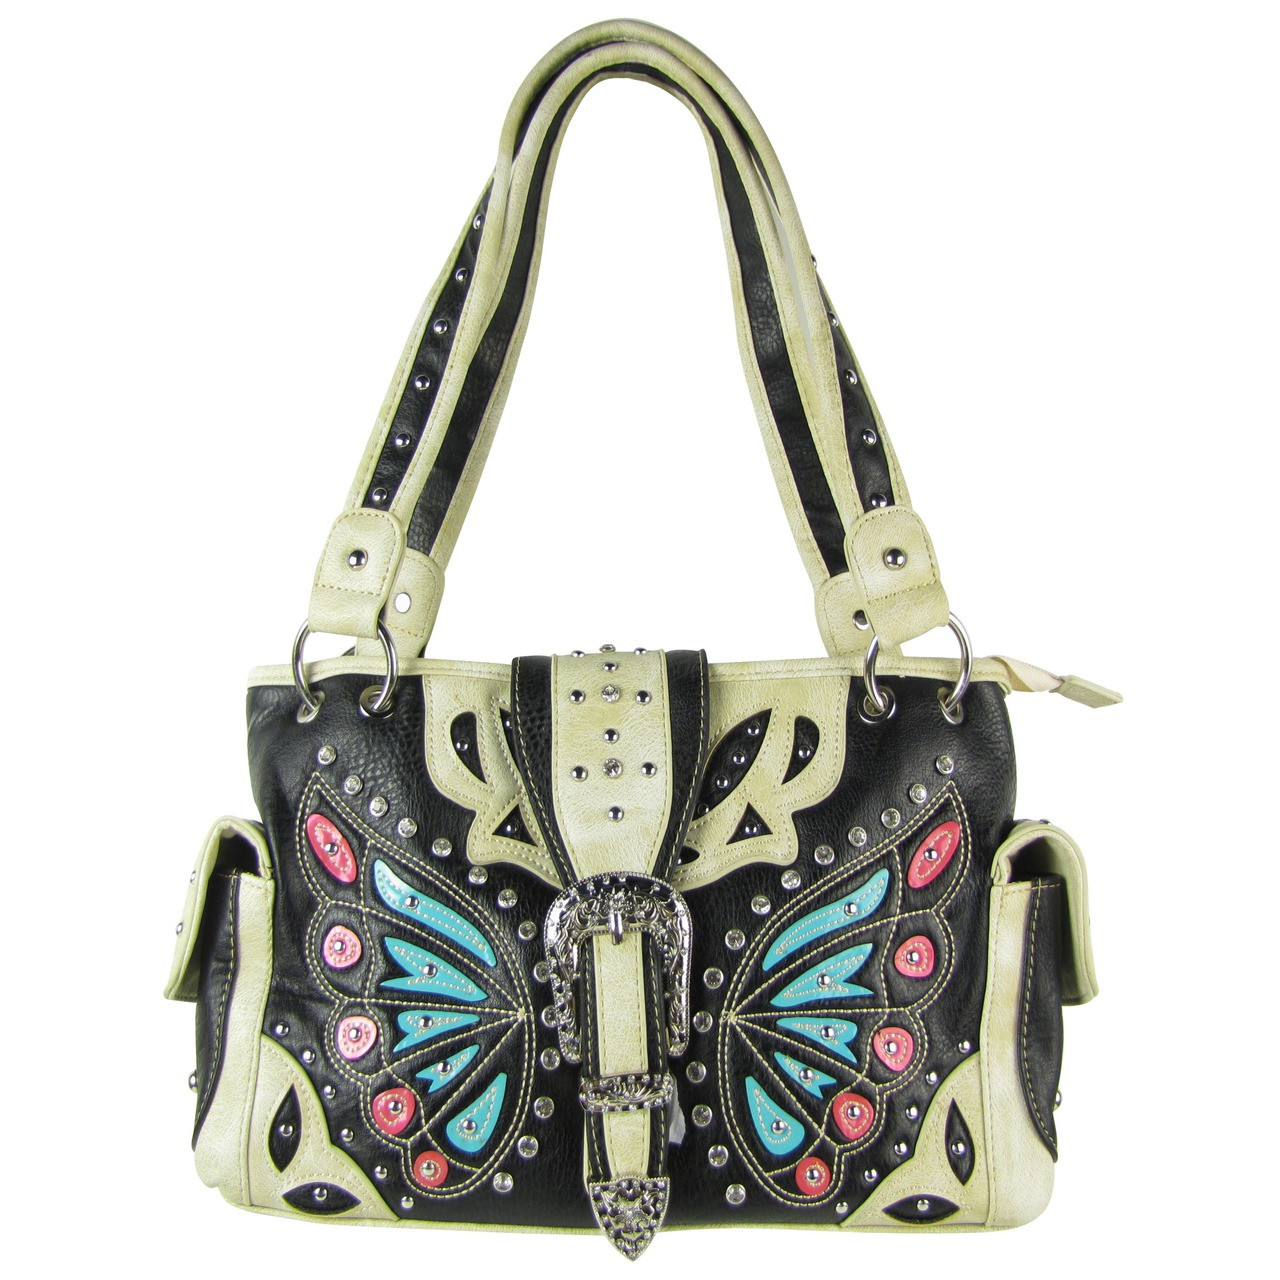 BLACK BUTTERFLY BUCKLE STUDDED RHINESTONE CROSS LOOK SHOULDER HANDBAG HB1-CHF1102BLK